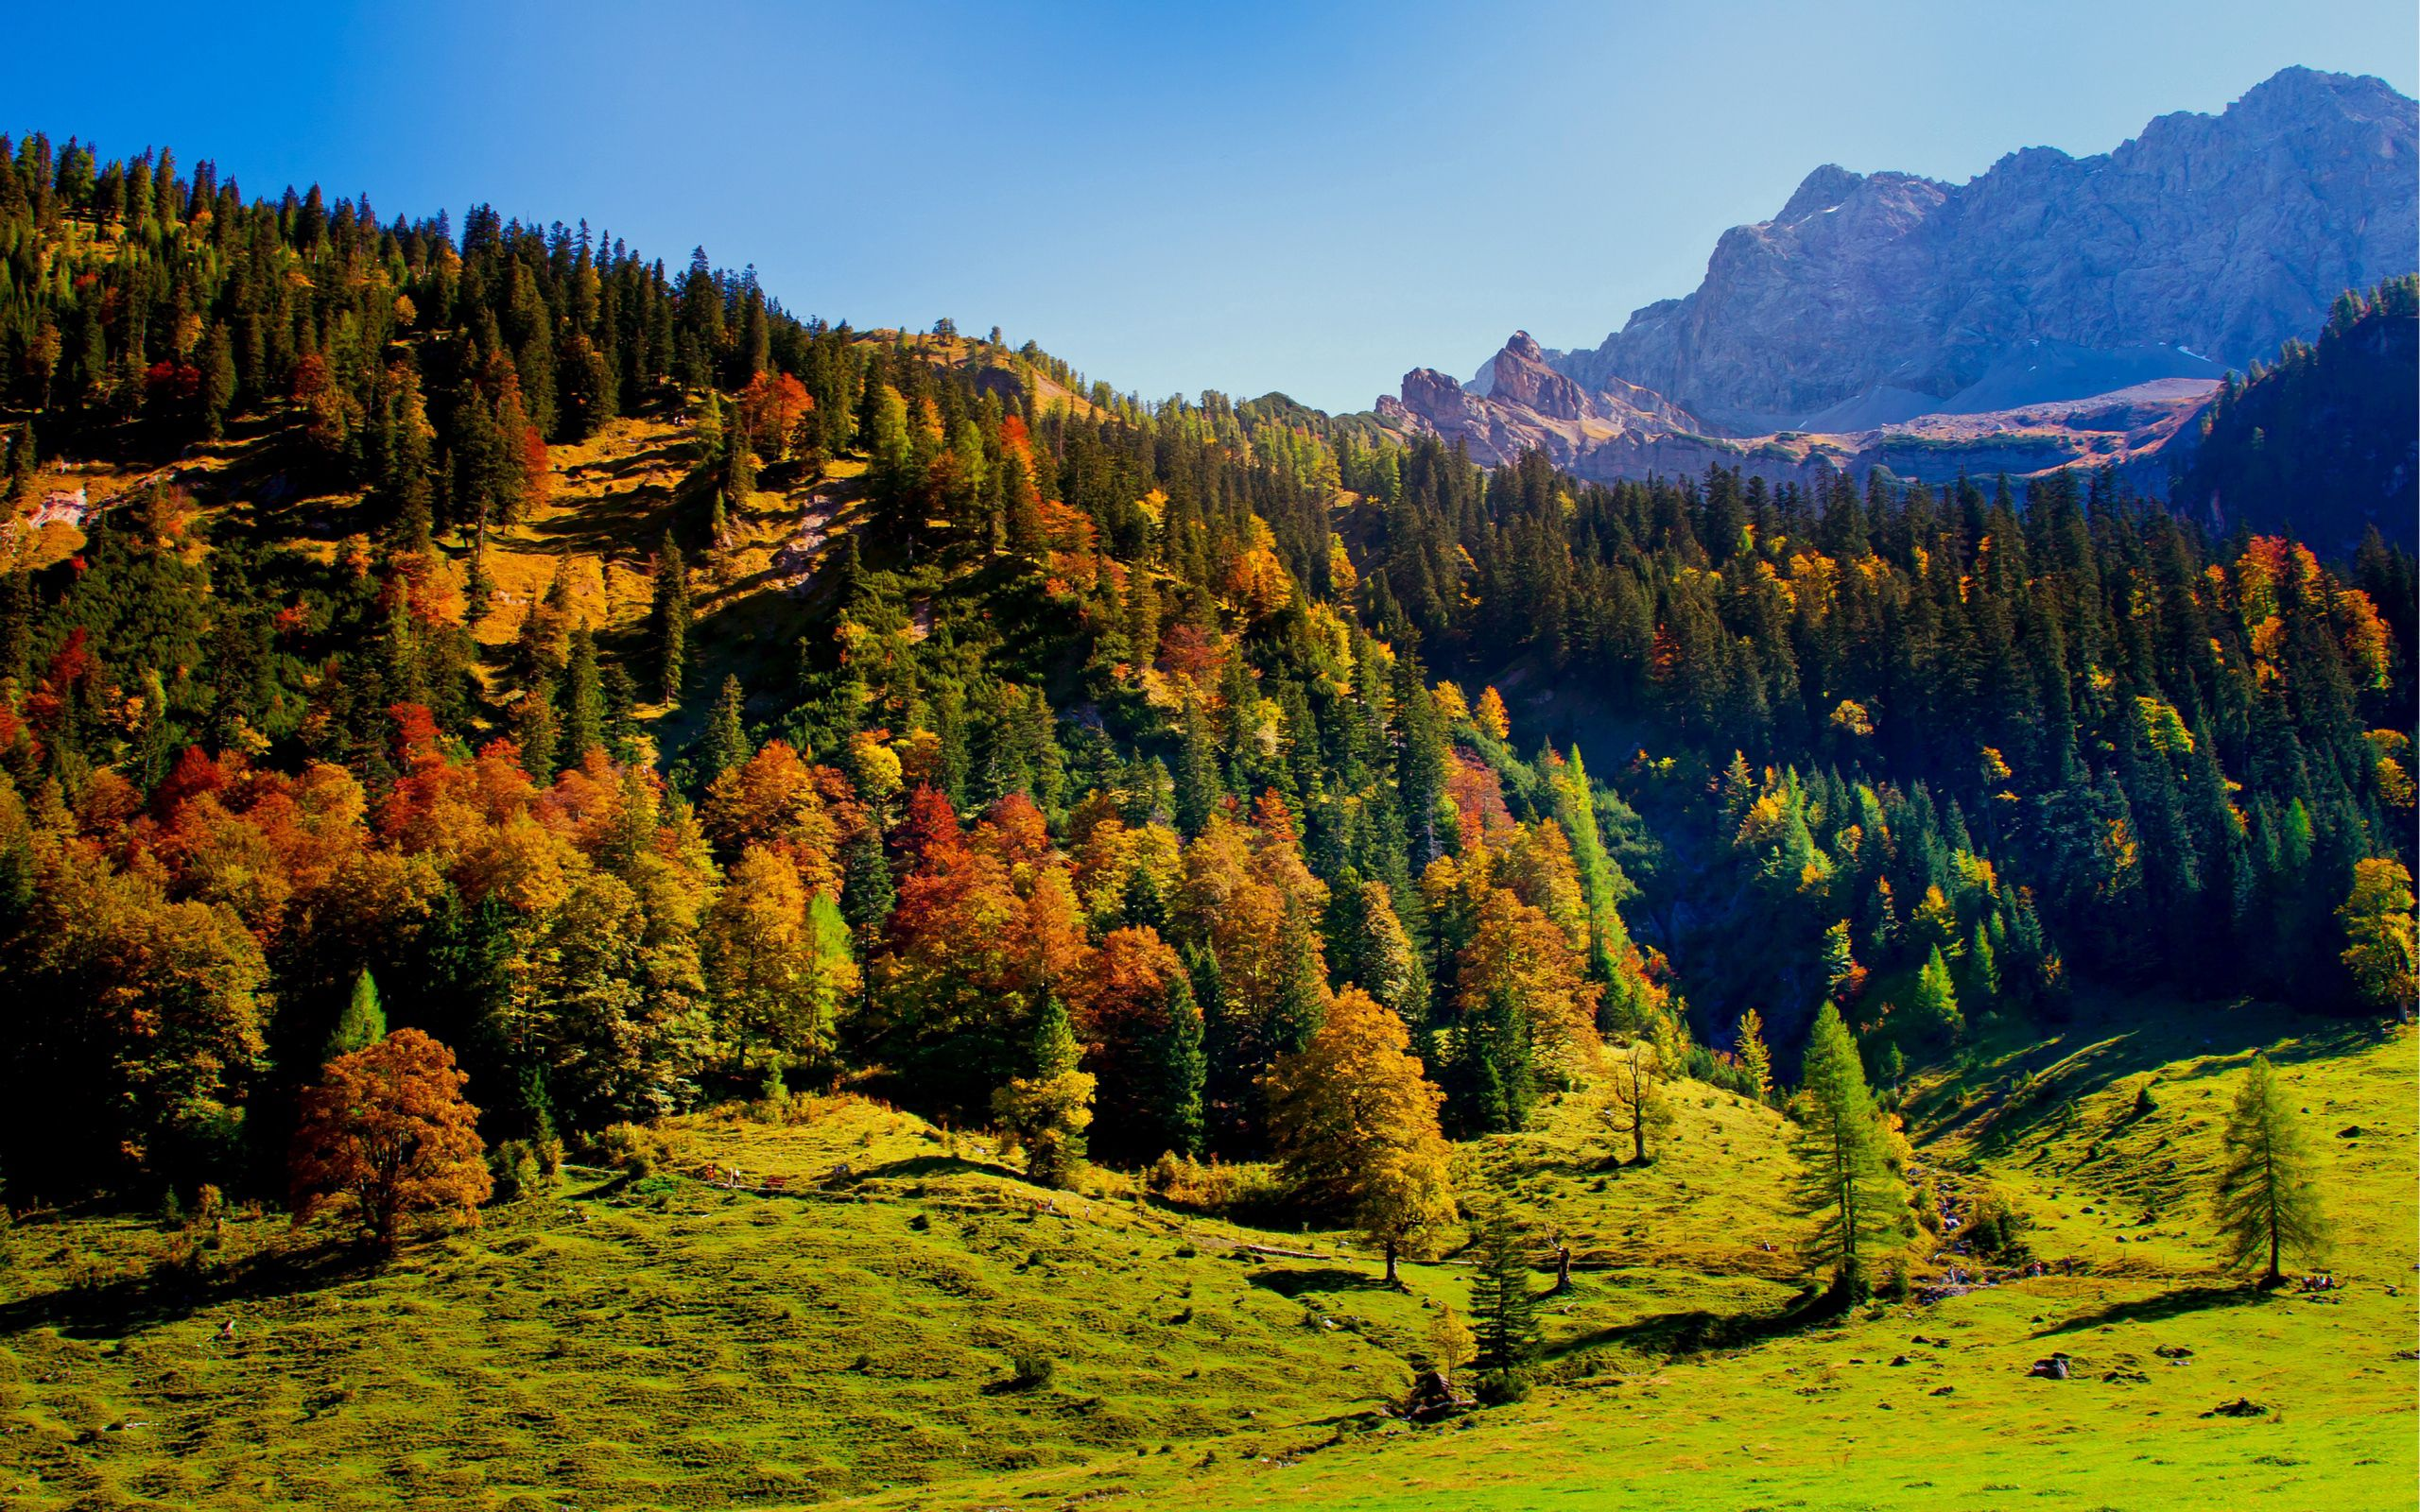 Download mobile wallpaper Landscape, Nature, Mountains, Forest, Relief, Hills, Freshness, Shadows, Air for free.